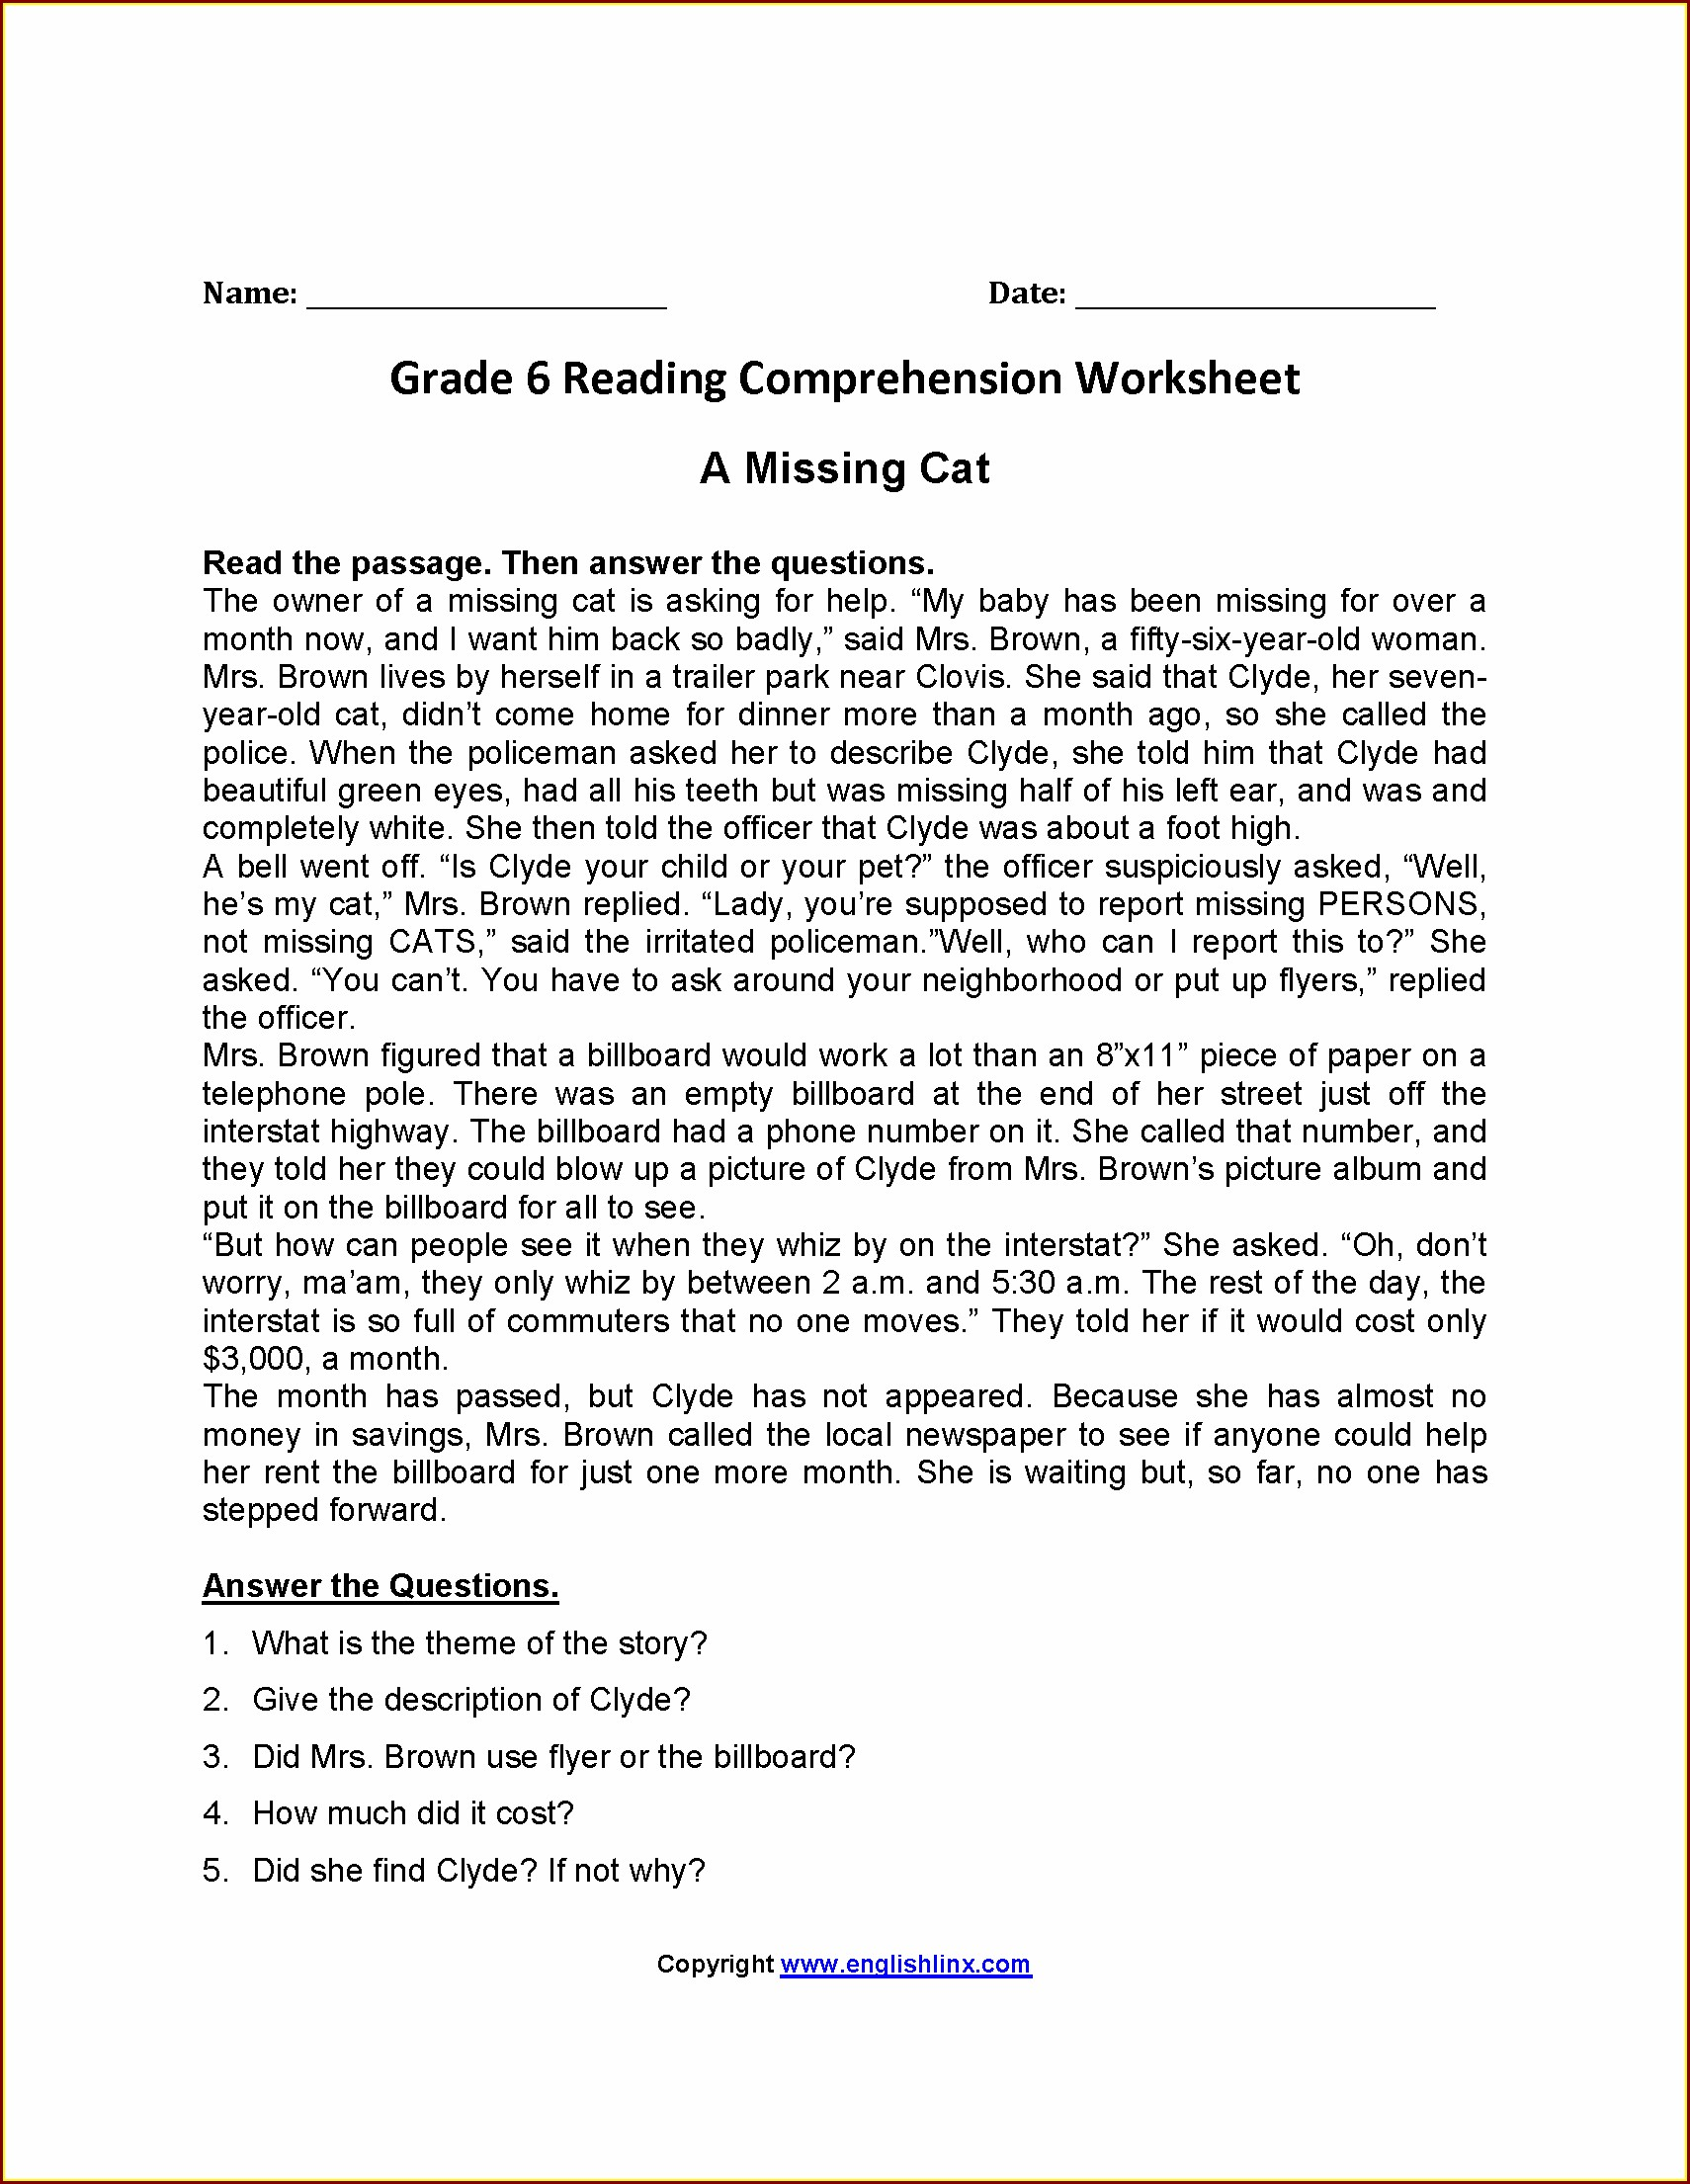 Comprehension Worksheet Year 6